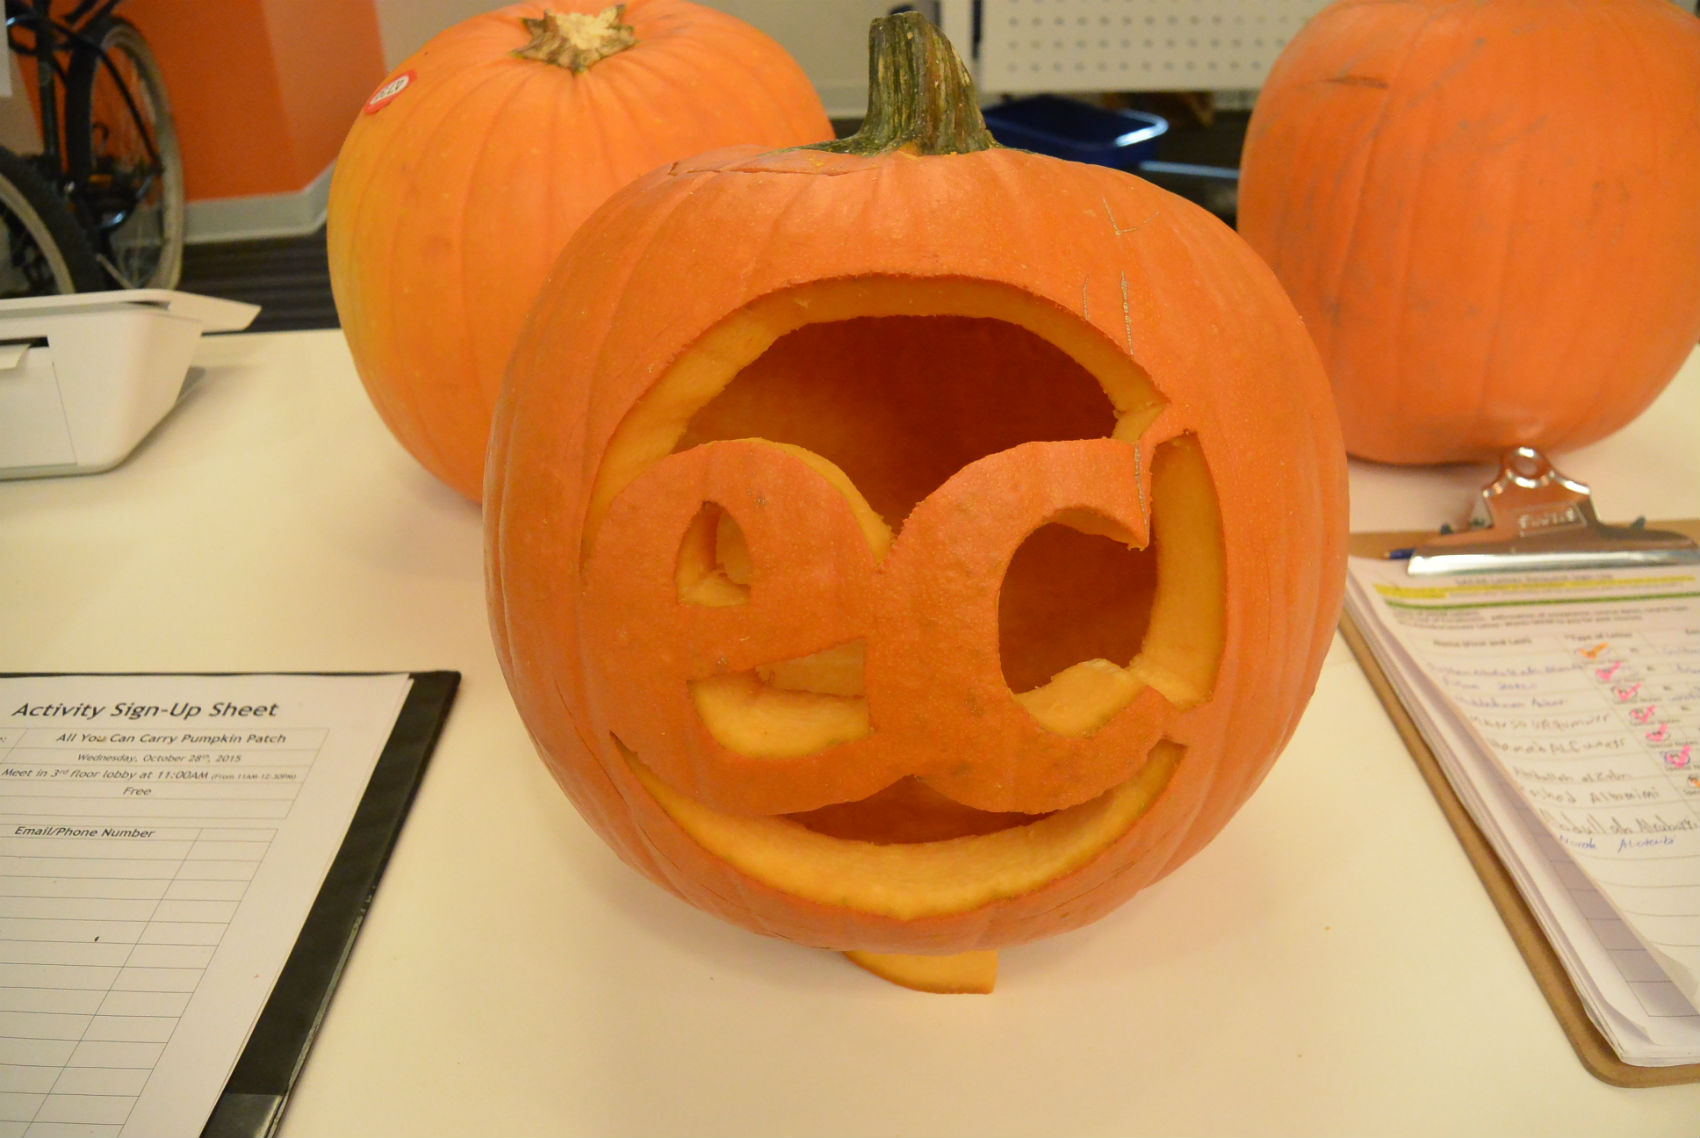 ECLA's staff carved a pumpkin!